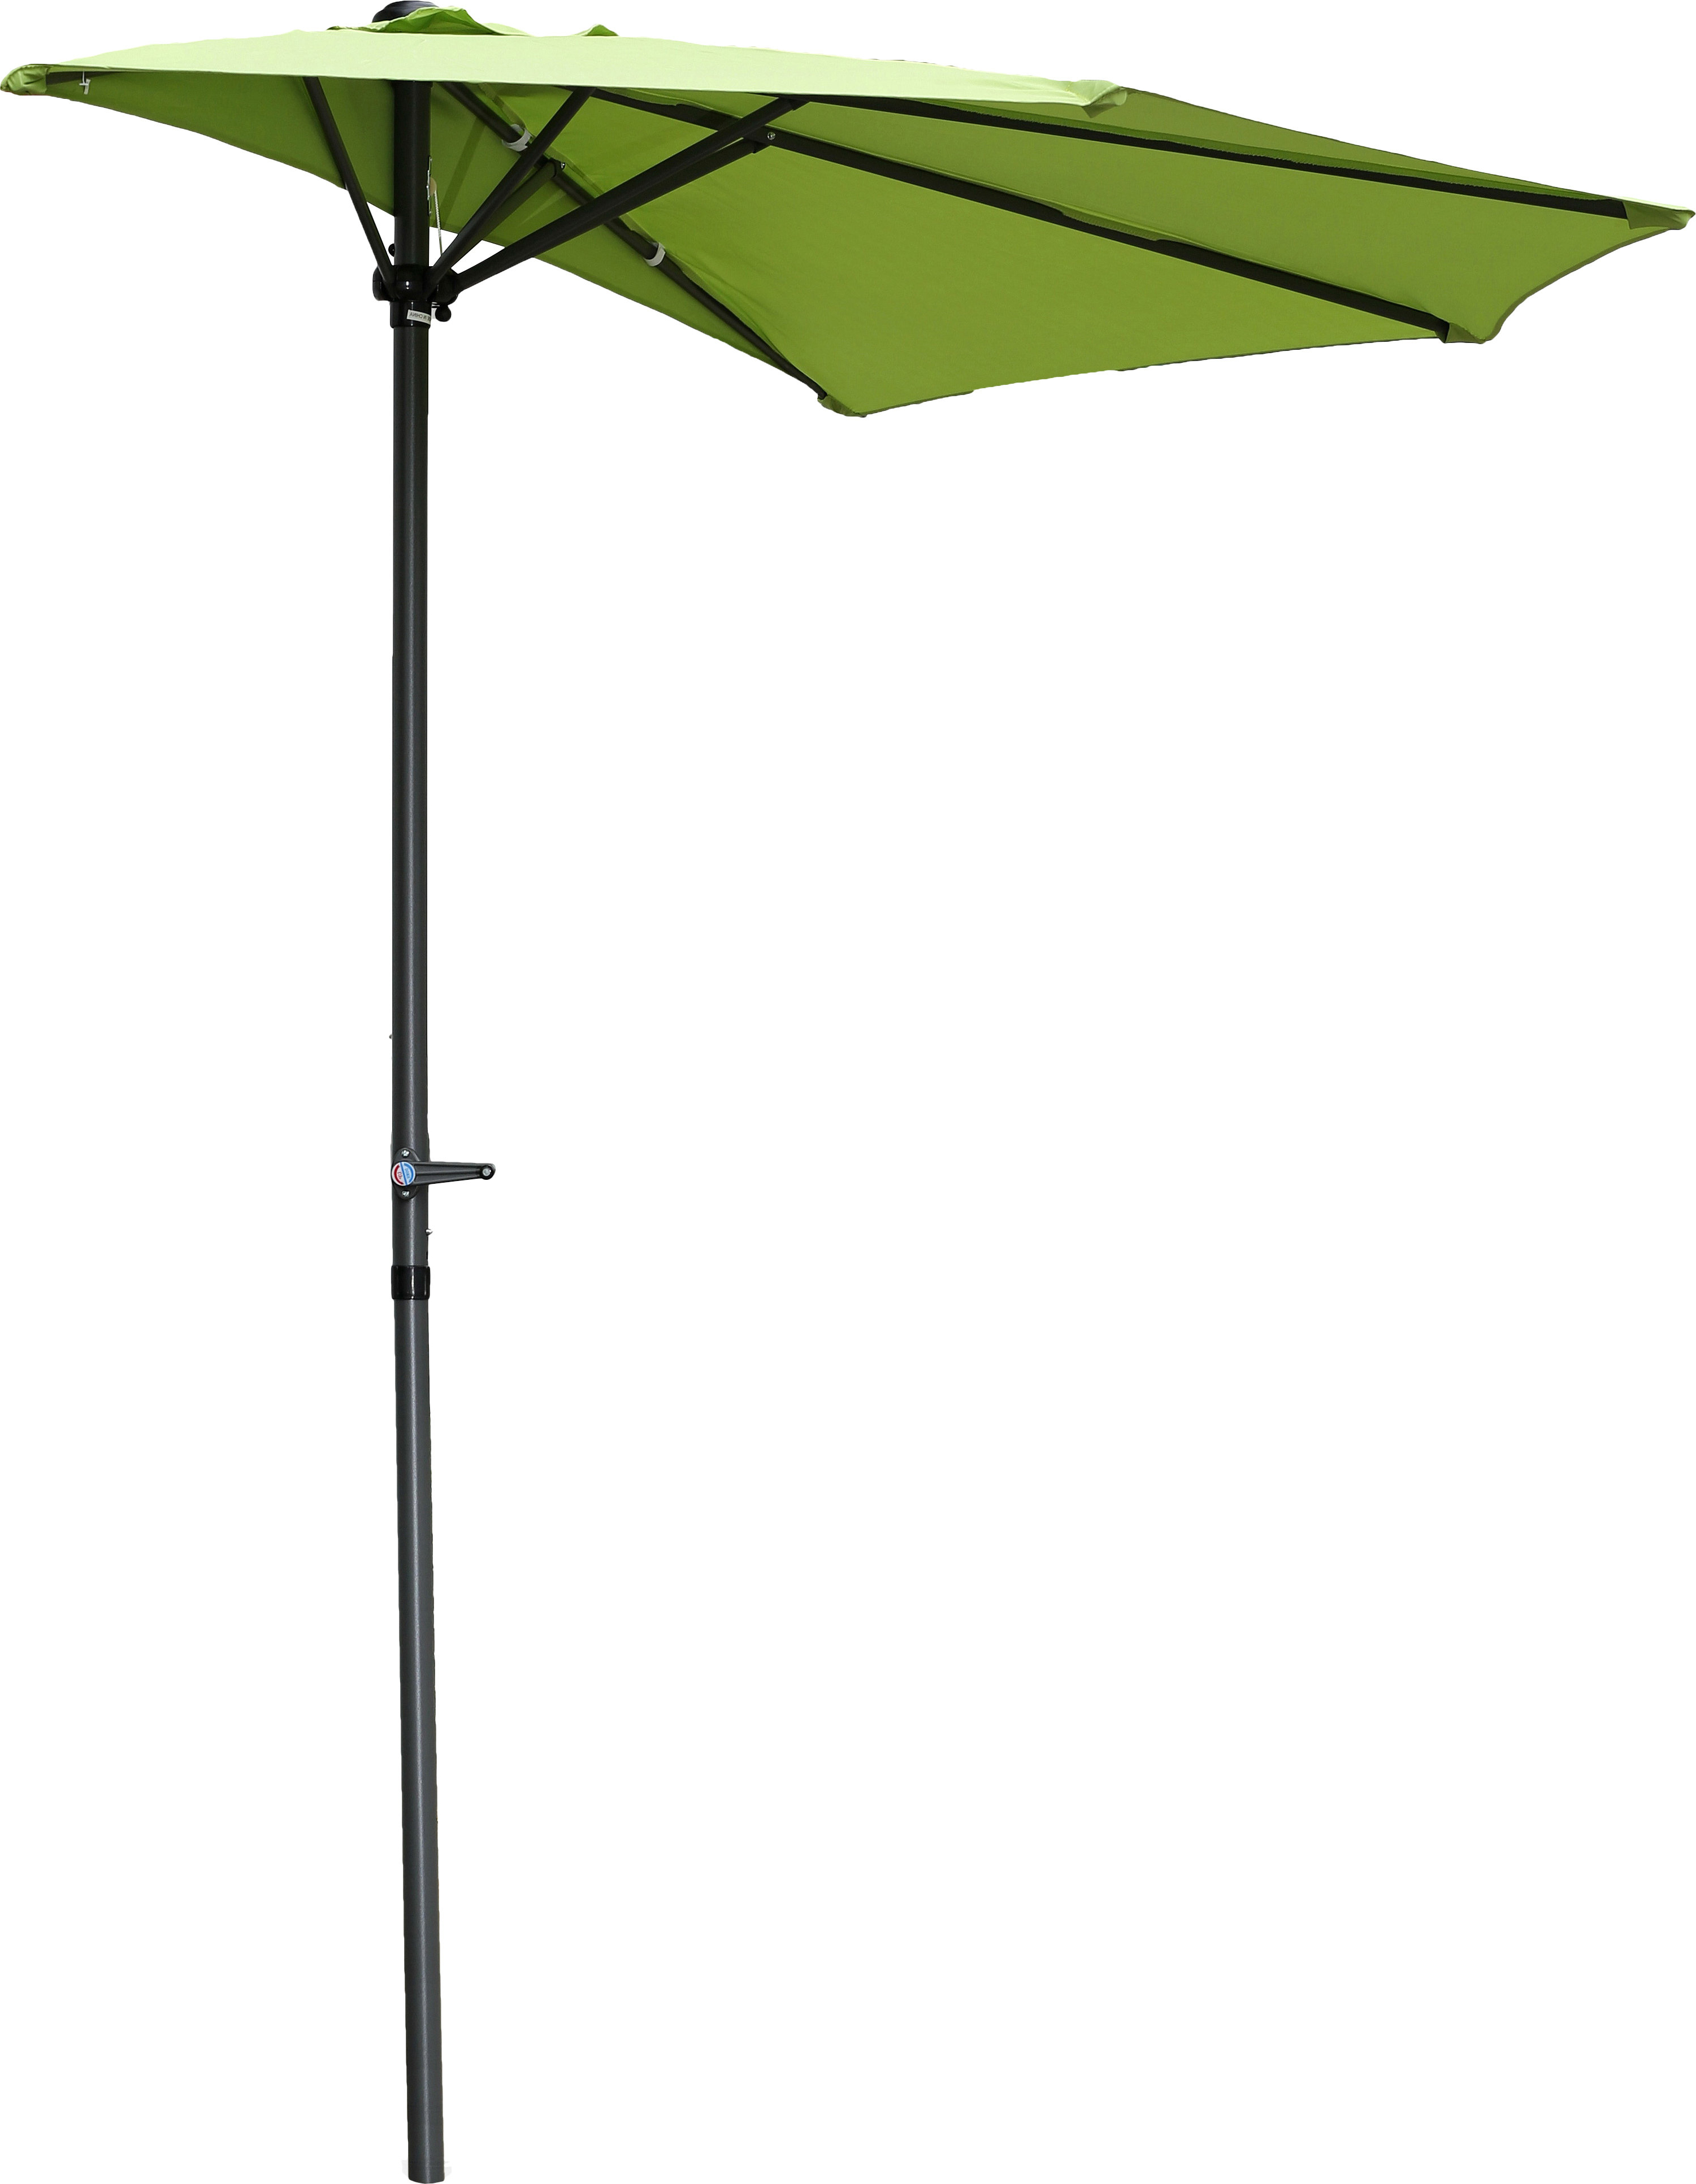 Dade City North 9' Half Market Umbrella With Regard To Current Hyperion Beach Umbrellas (View 20 of 20)